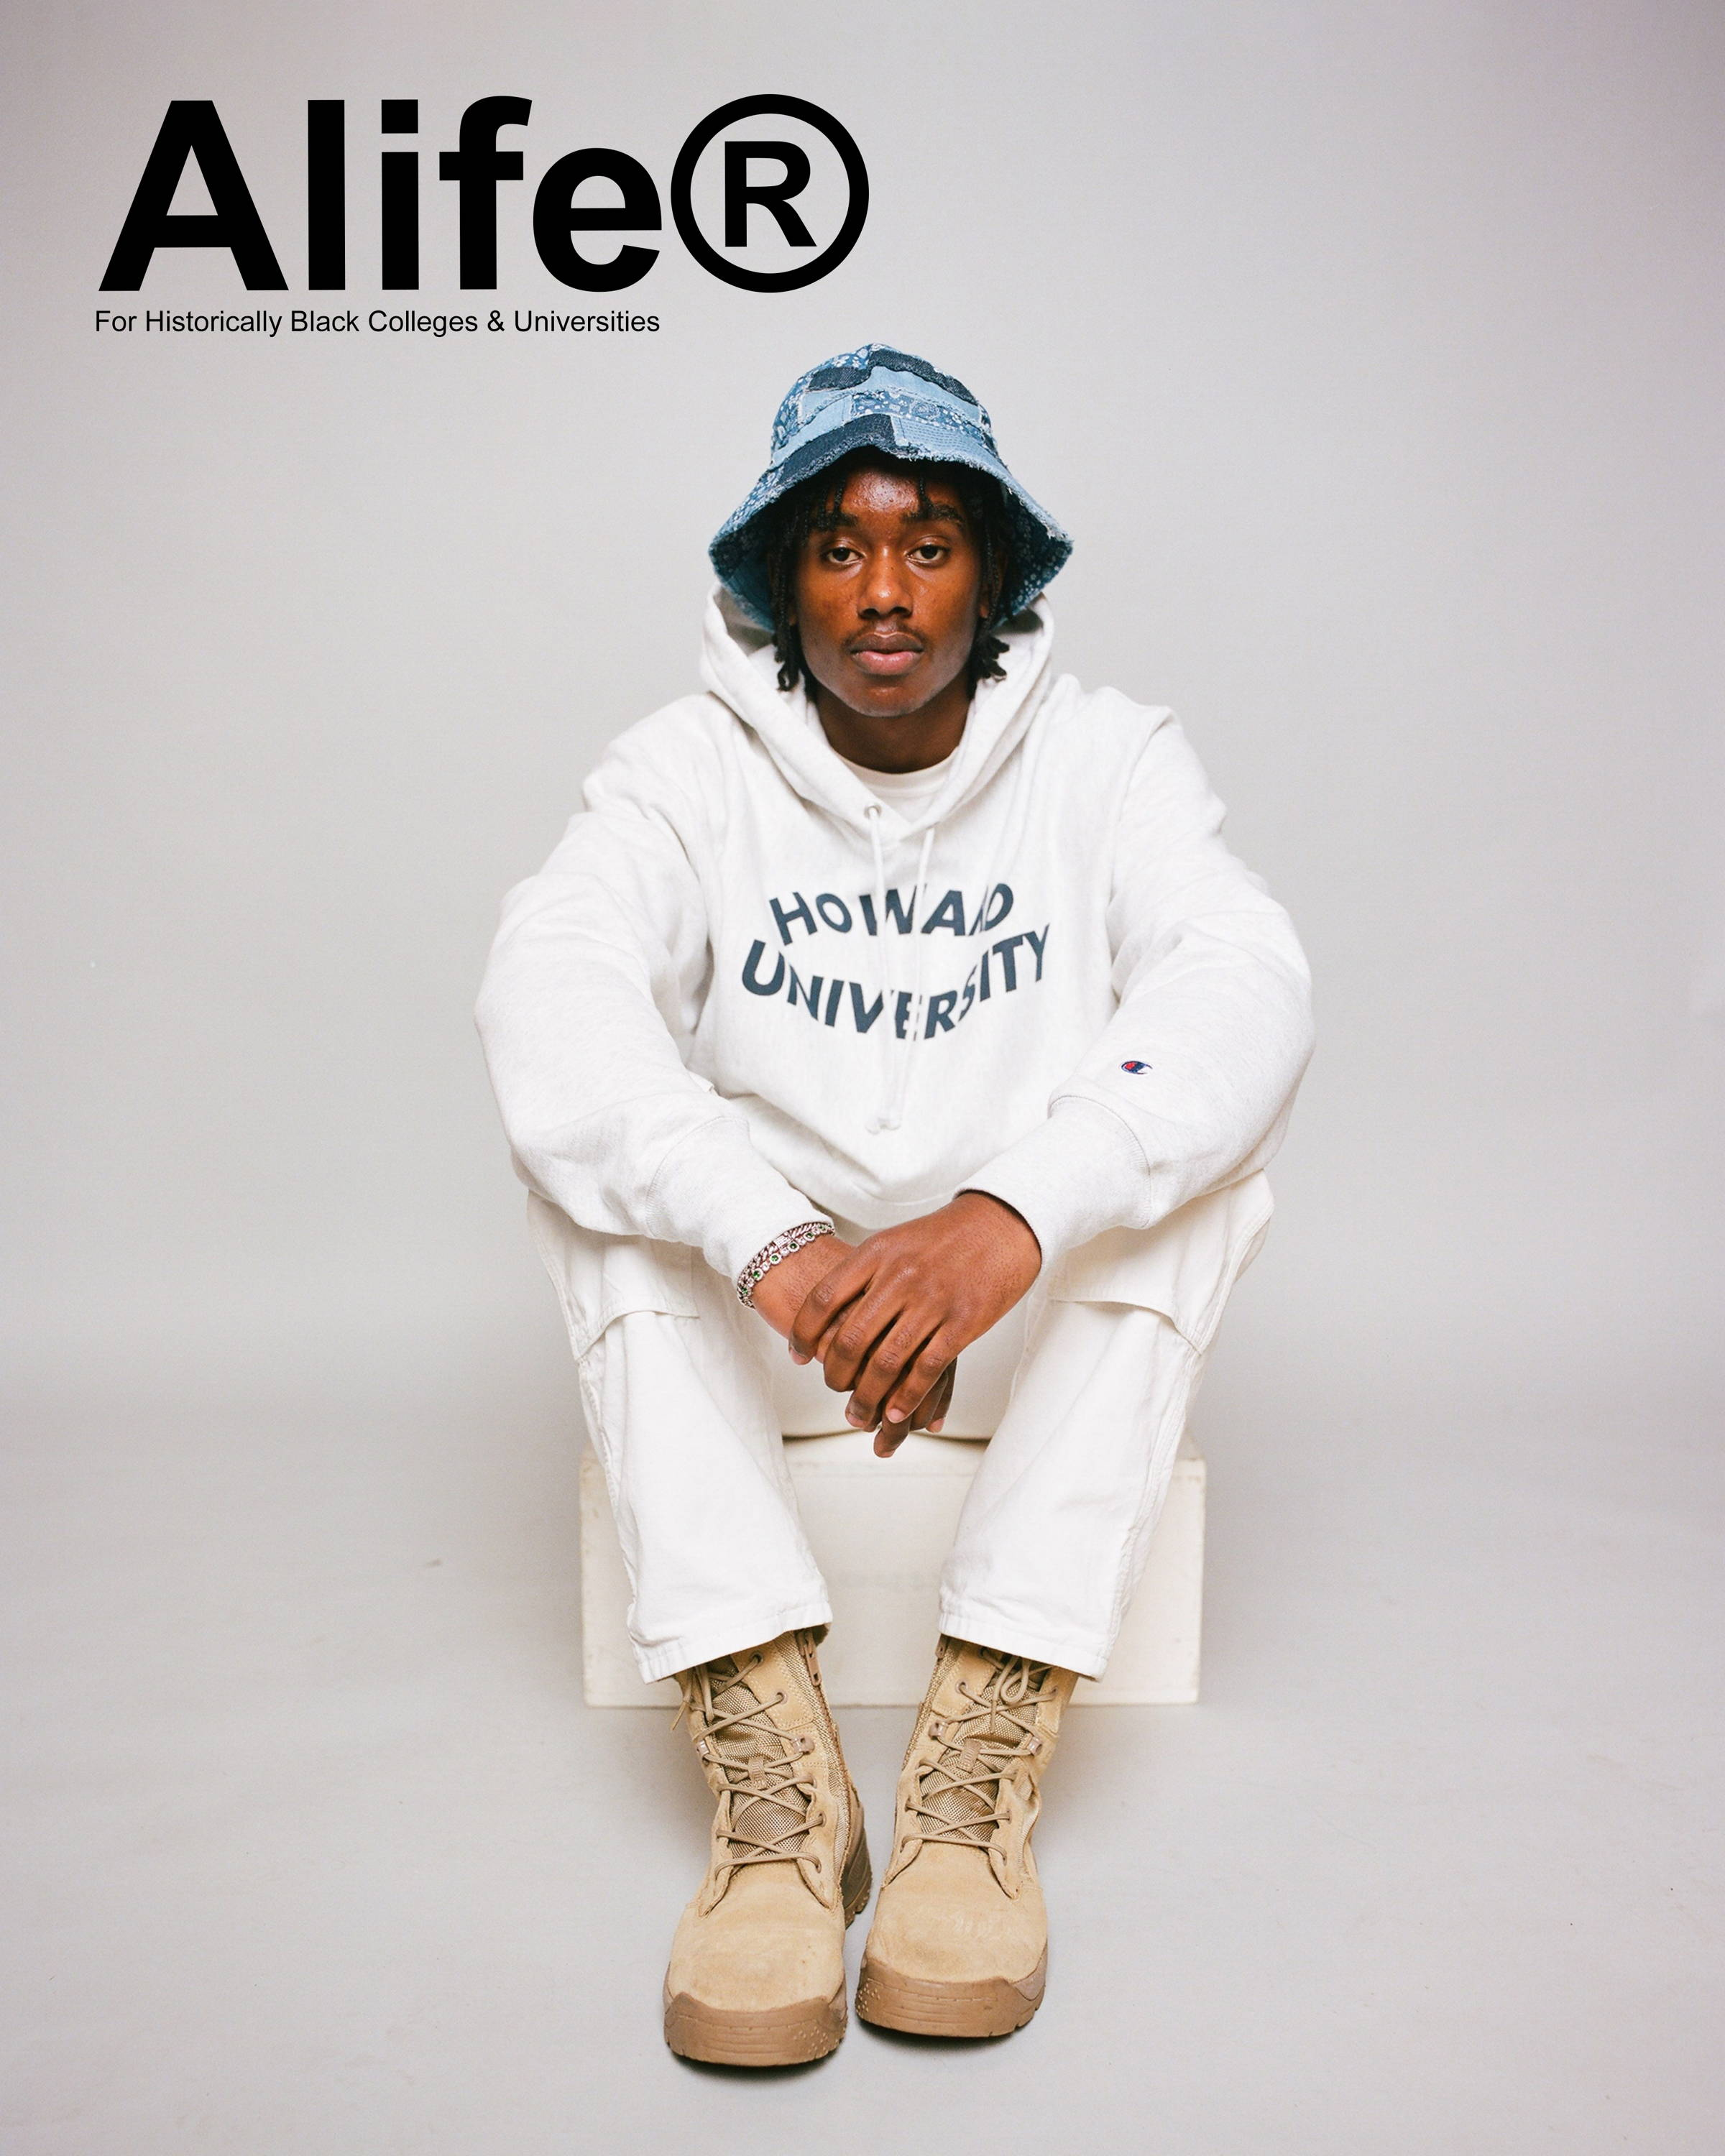 Alife® for Historically Black Colleges & Universities - Howard University